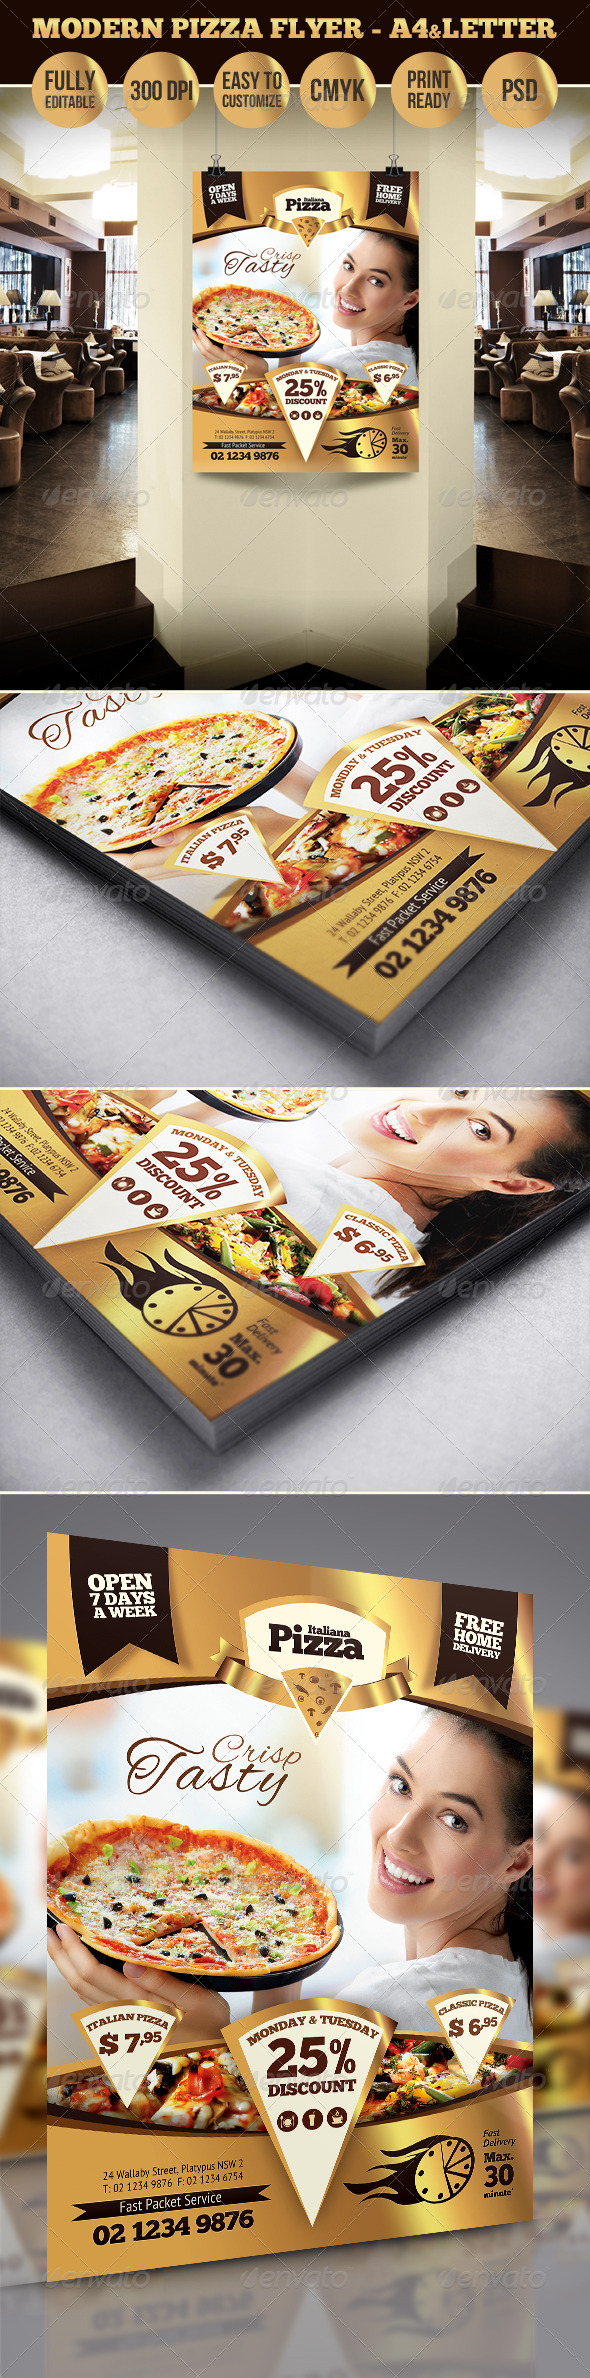 GraphicRiver Modern Pizza Flyer A4 & Letter Sizes 4008403